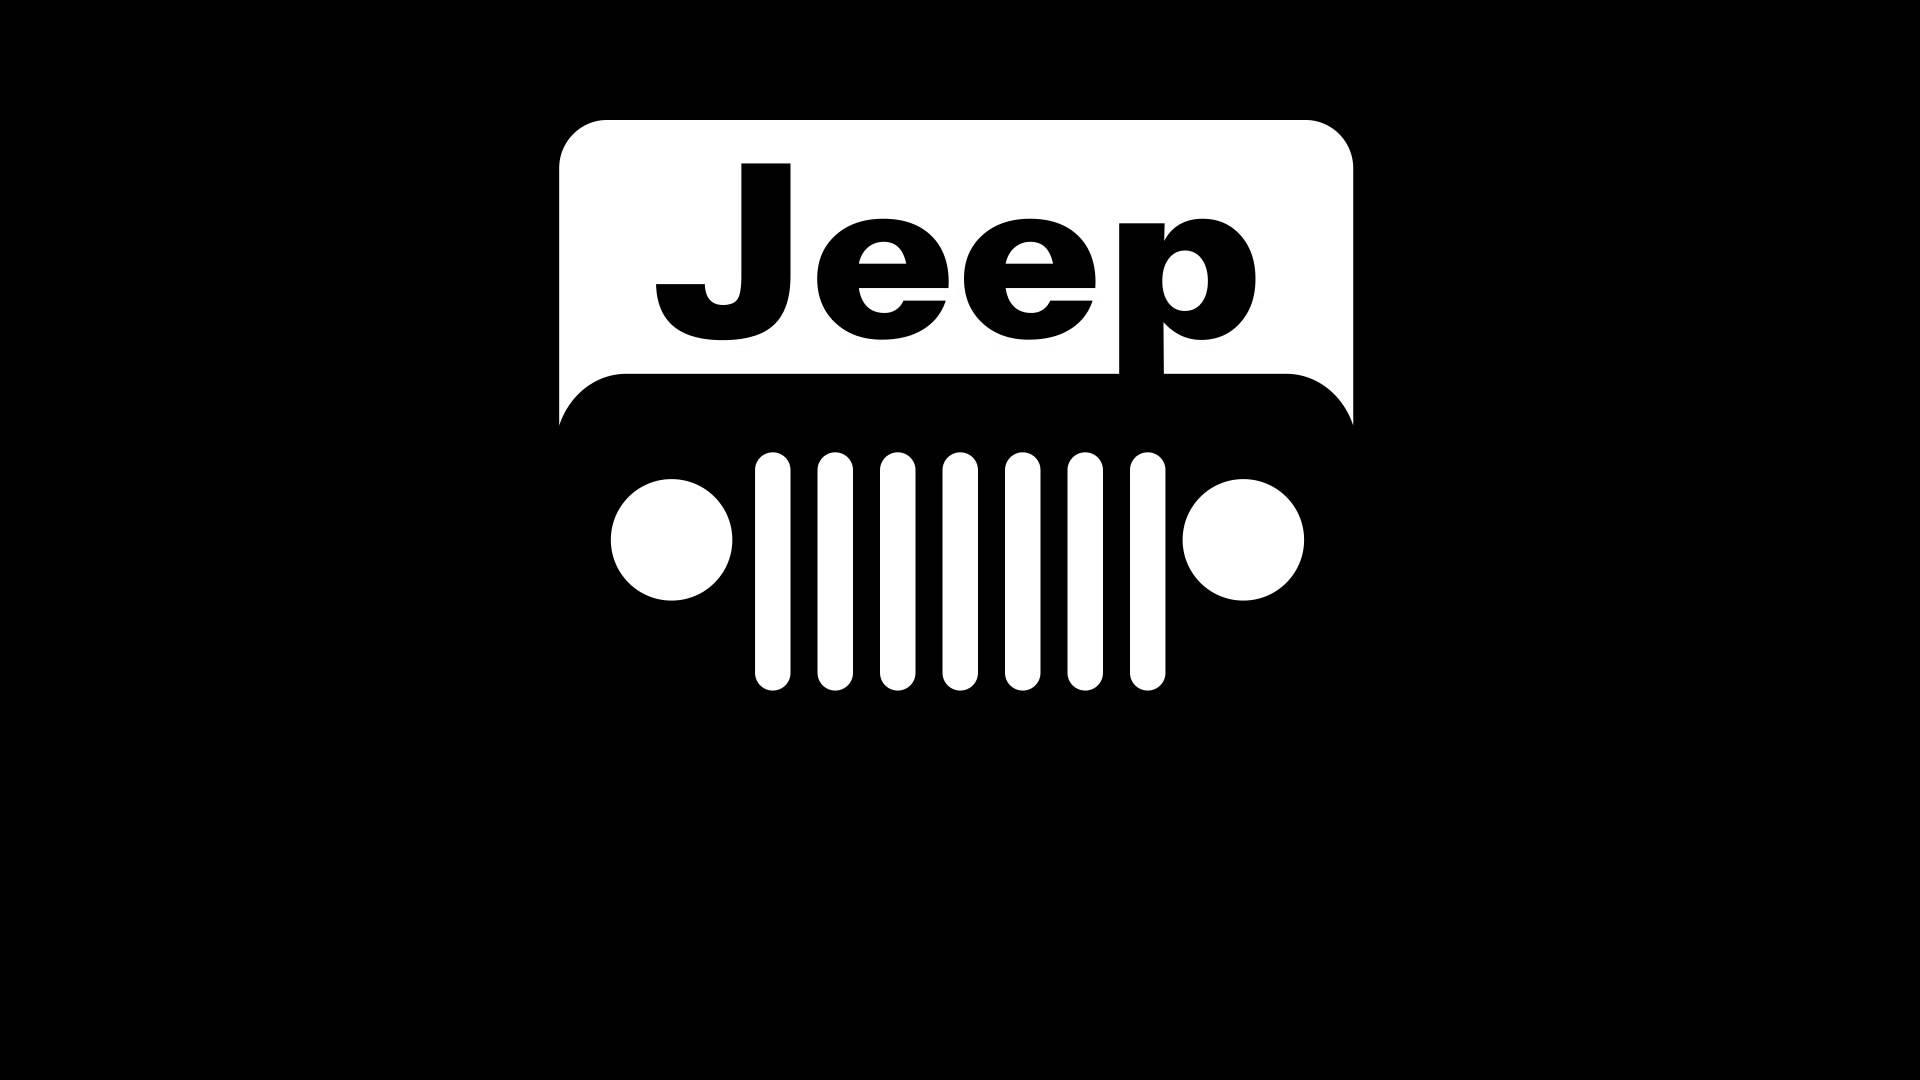 jeep logo wallpapers | wallpaper.wiki